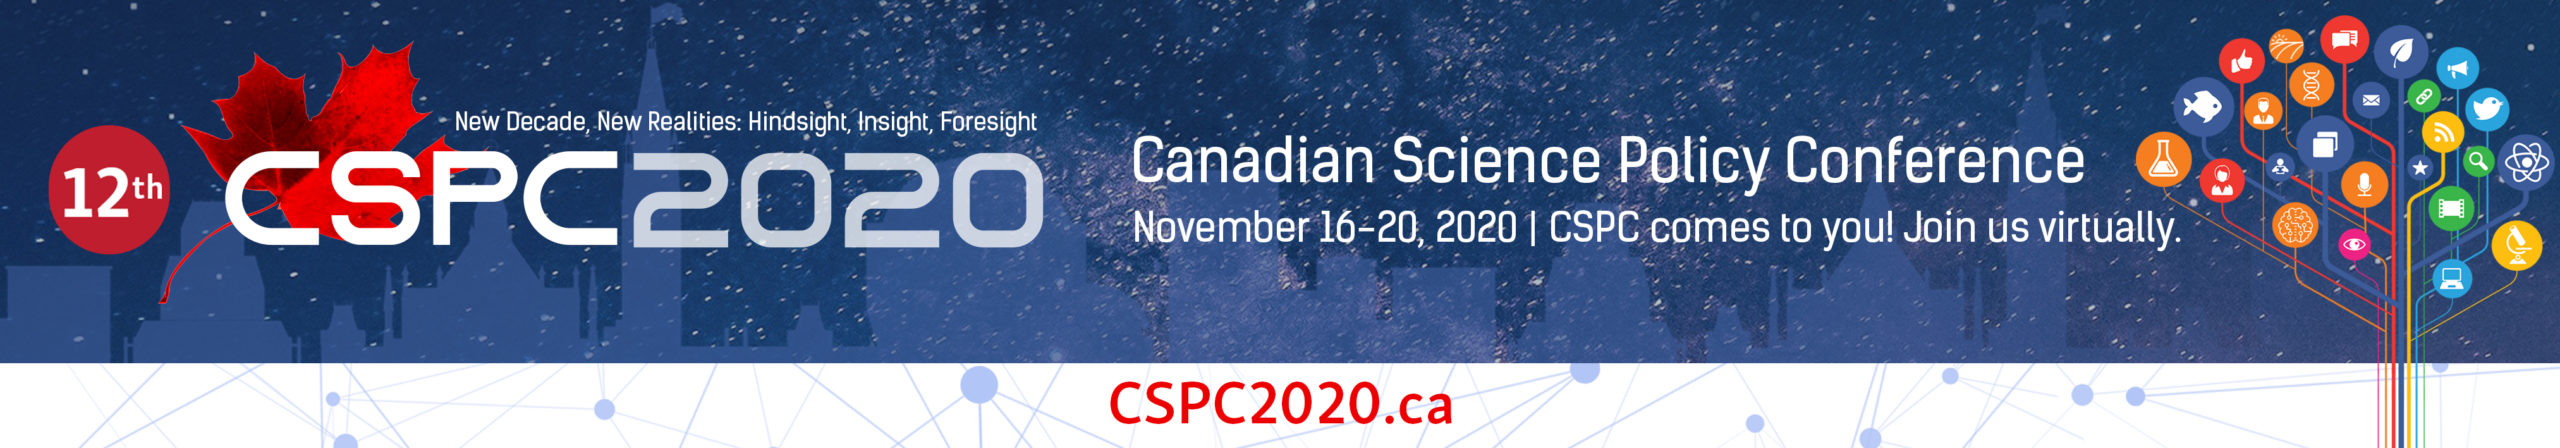 The CSPC 2020 conference banner: the CSPC maple leaf on a galaxy background with the conference name and dates.